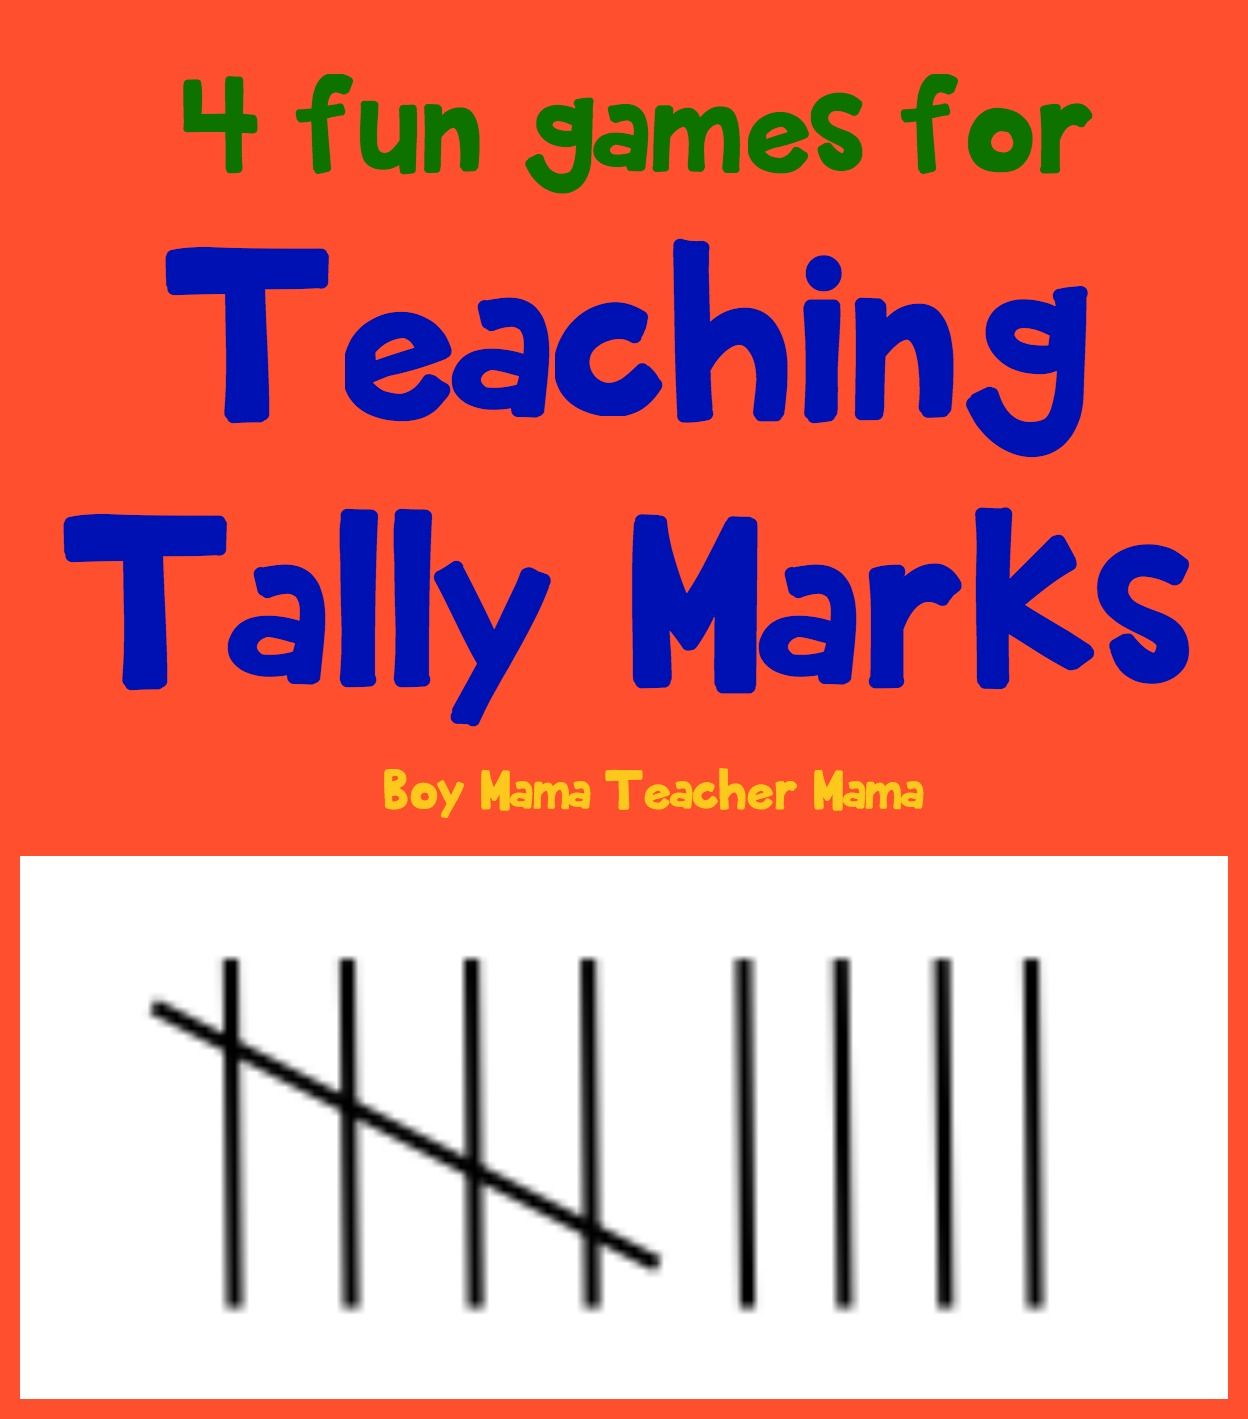 4 Fun Games for Teaching Tally Marks Tally marks are fun to teach – Tally Mark Worksheets for Kindergarten